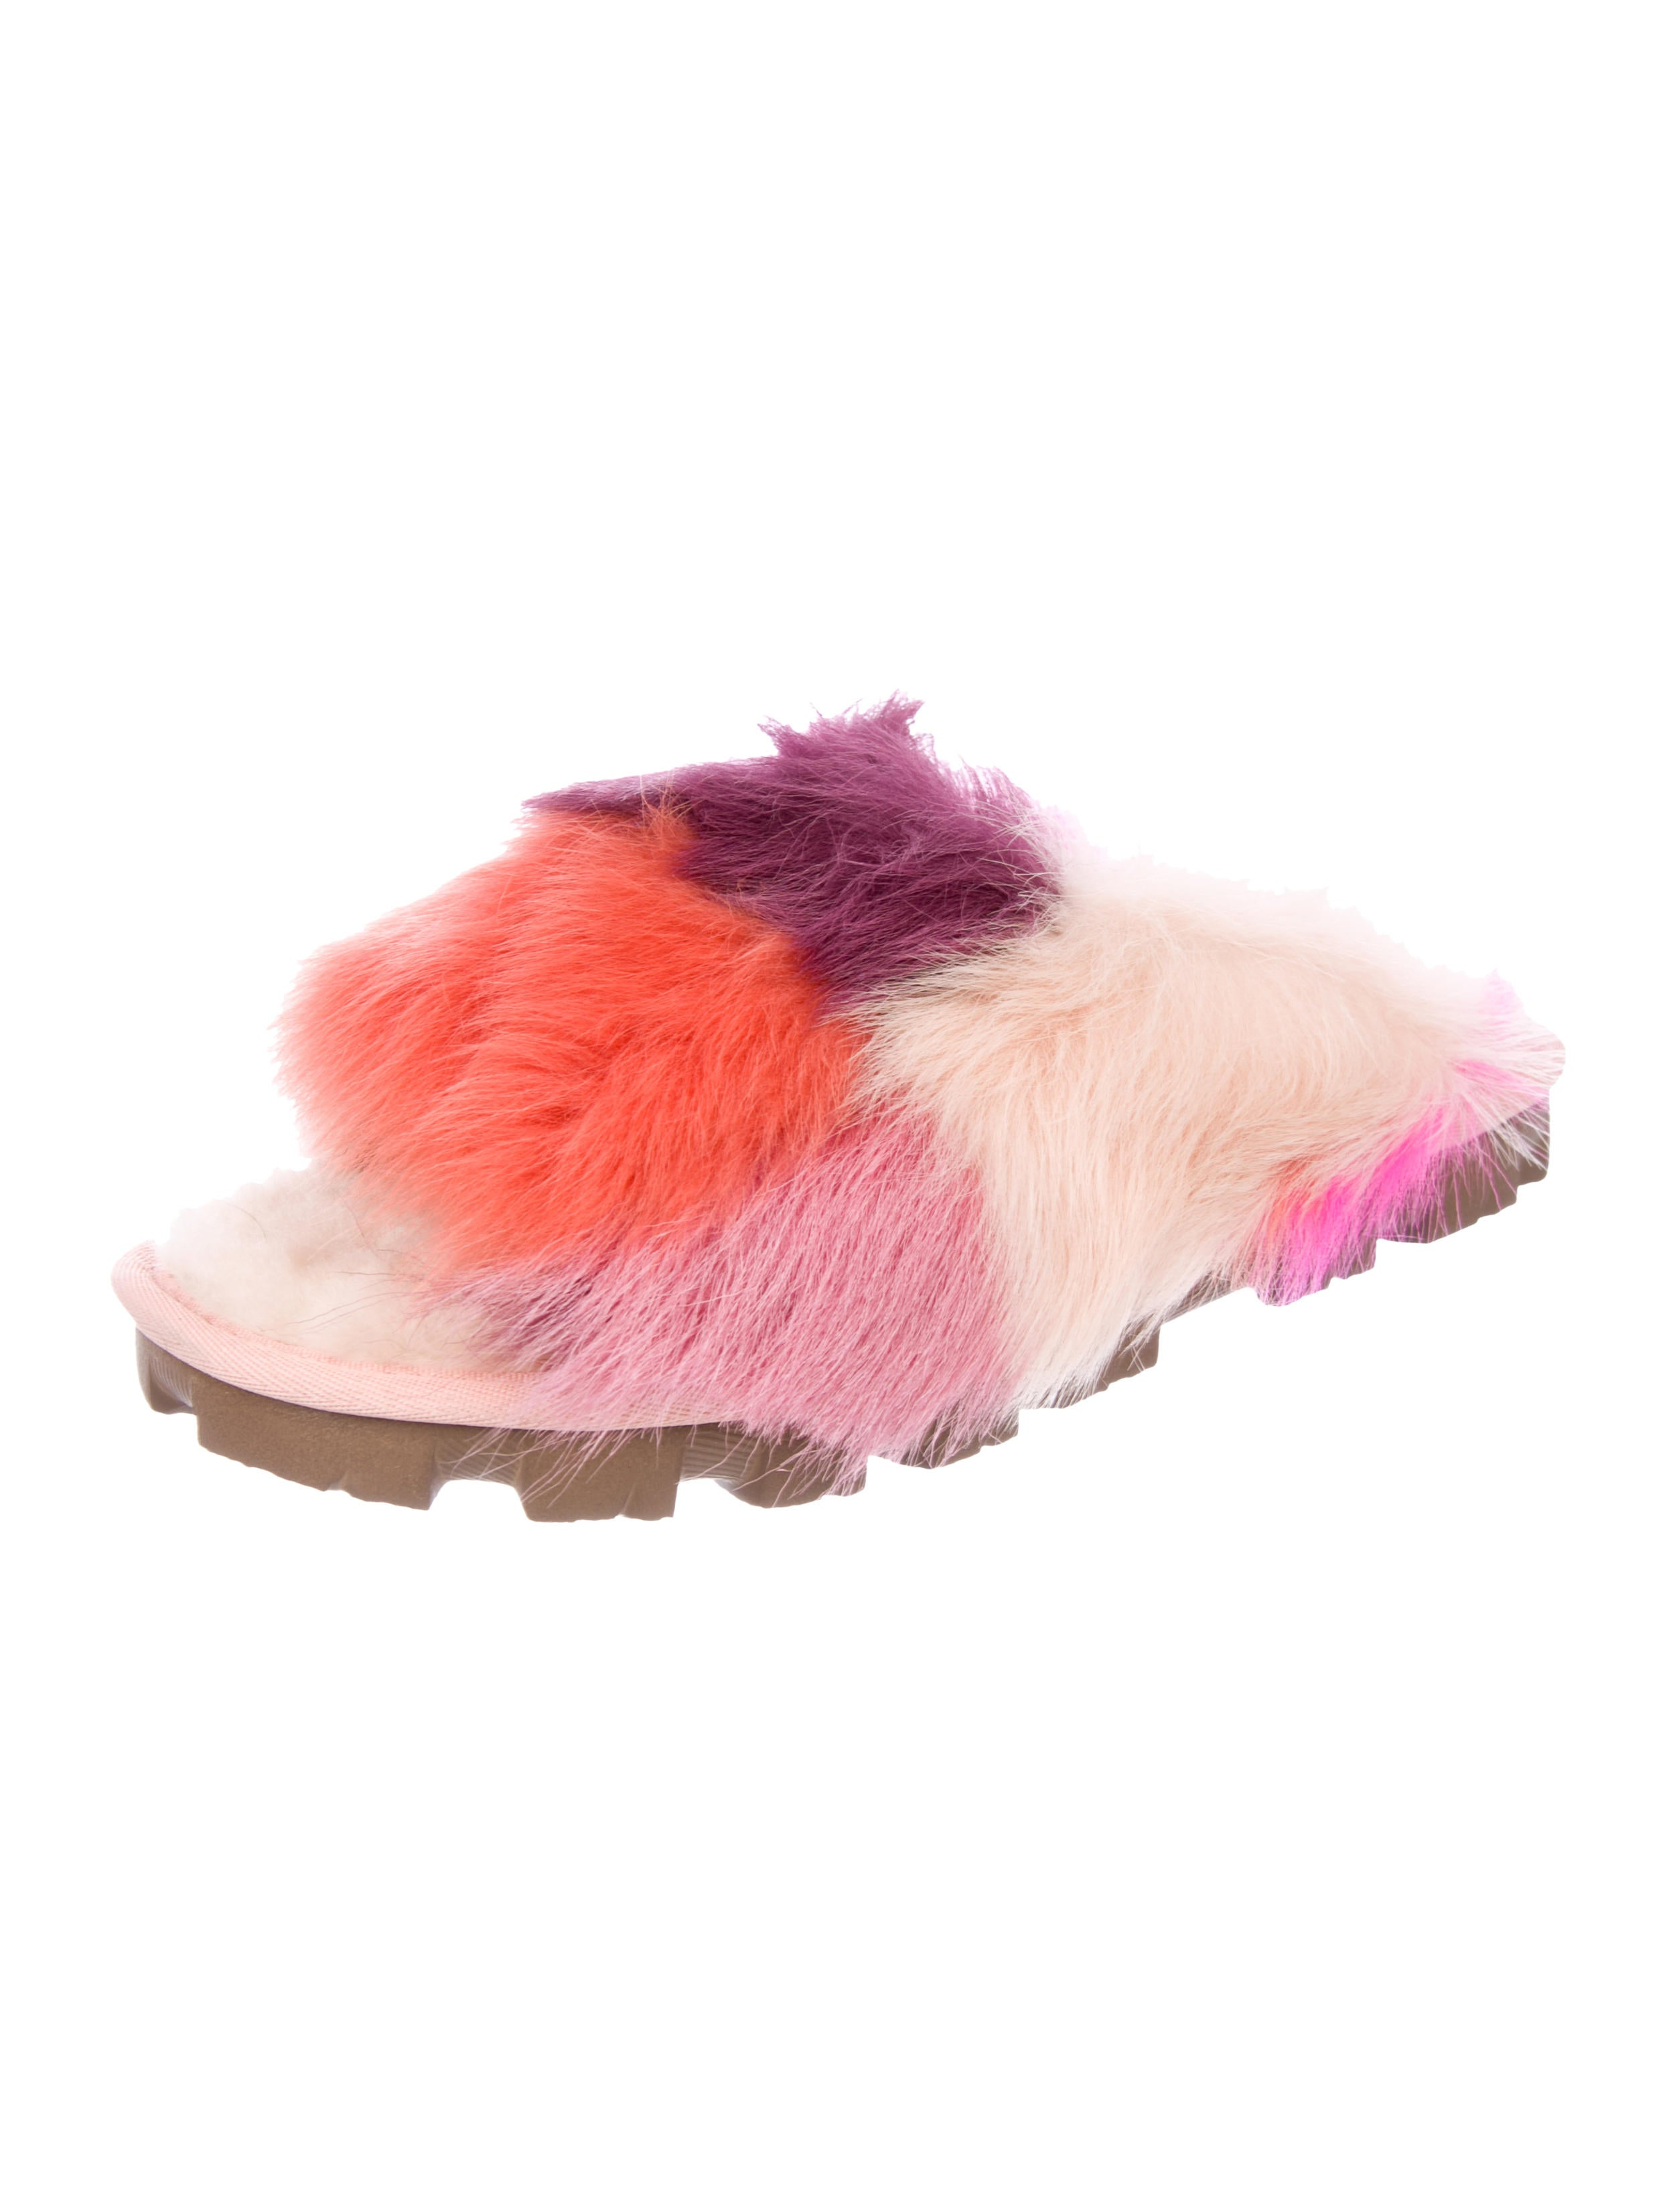 UGG Australia Shag It Slide Sandals w/ Tags collections cheap price outlet visit new discount fast delivery buy cheap newest outlet fashion Style Fg21kVxI